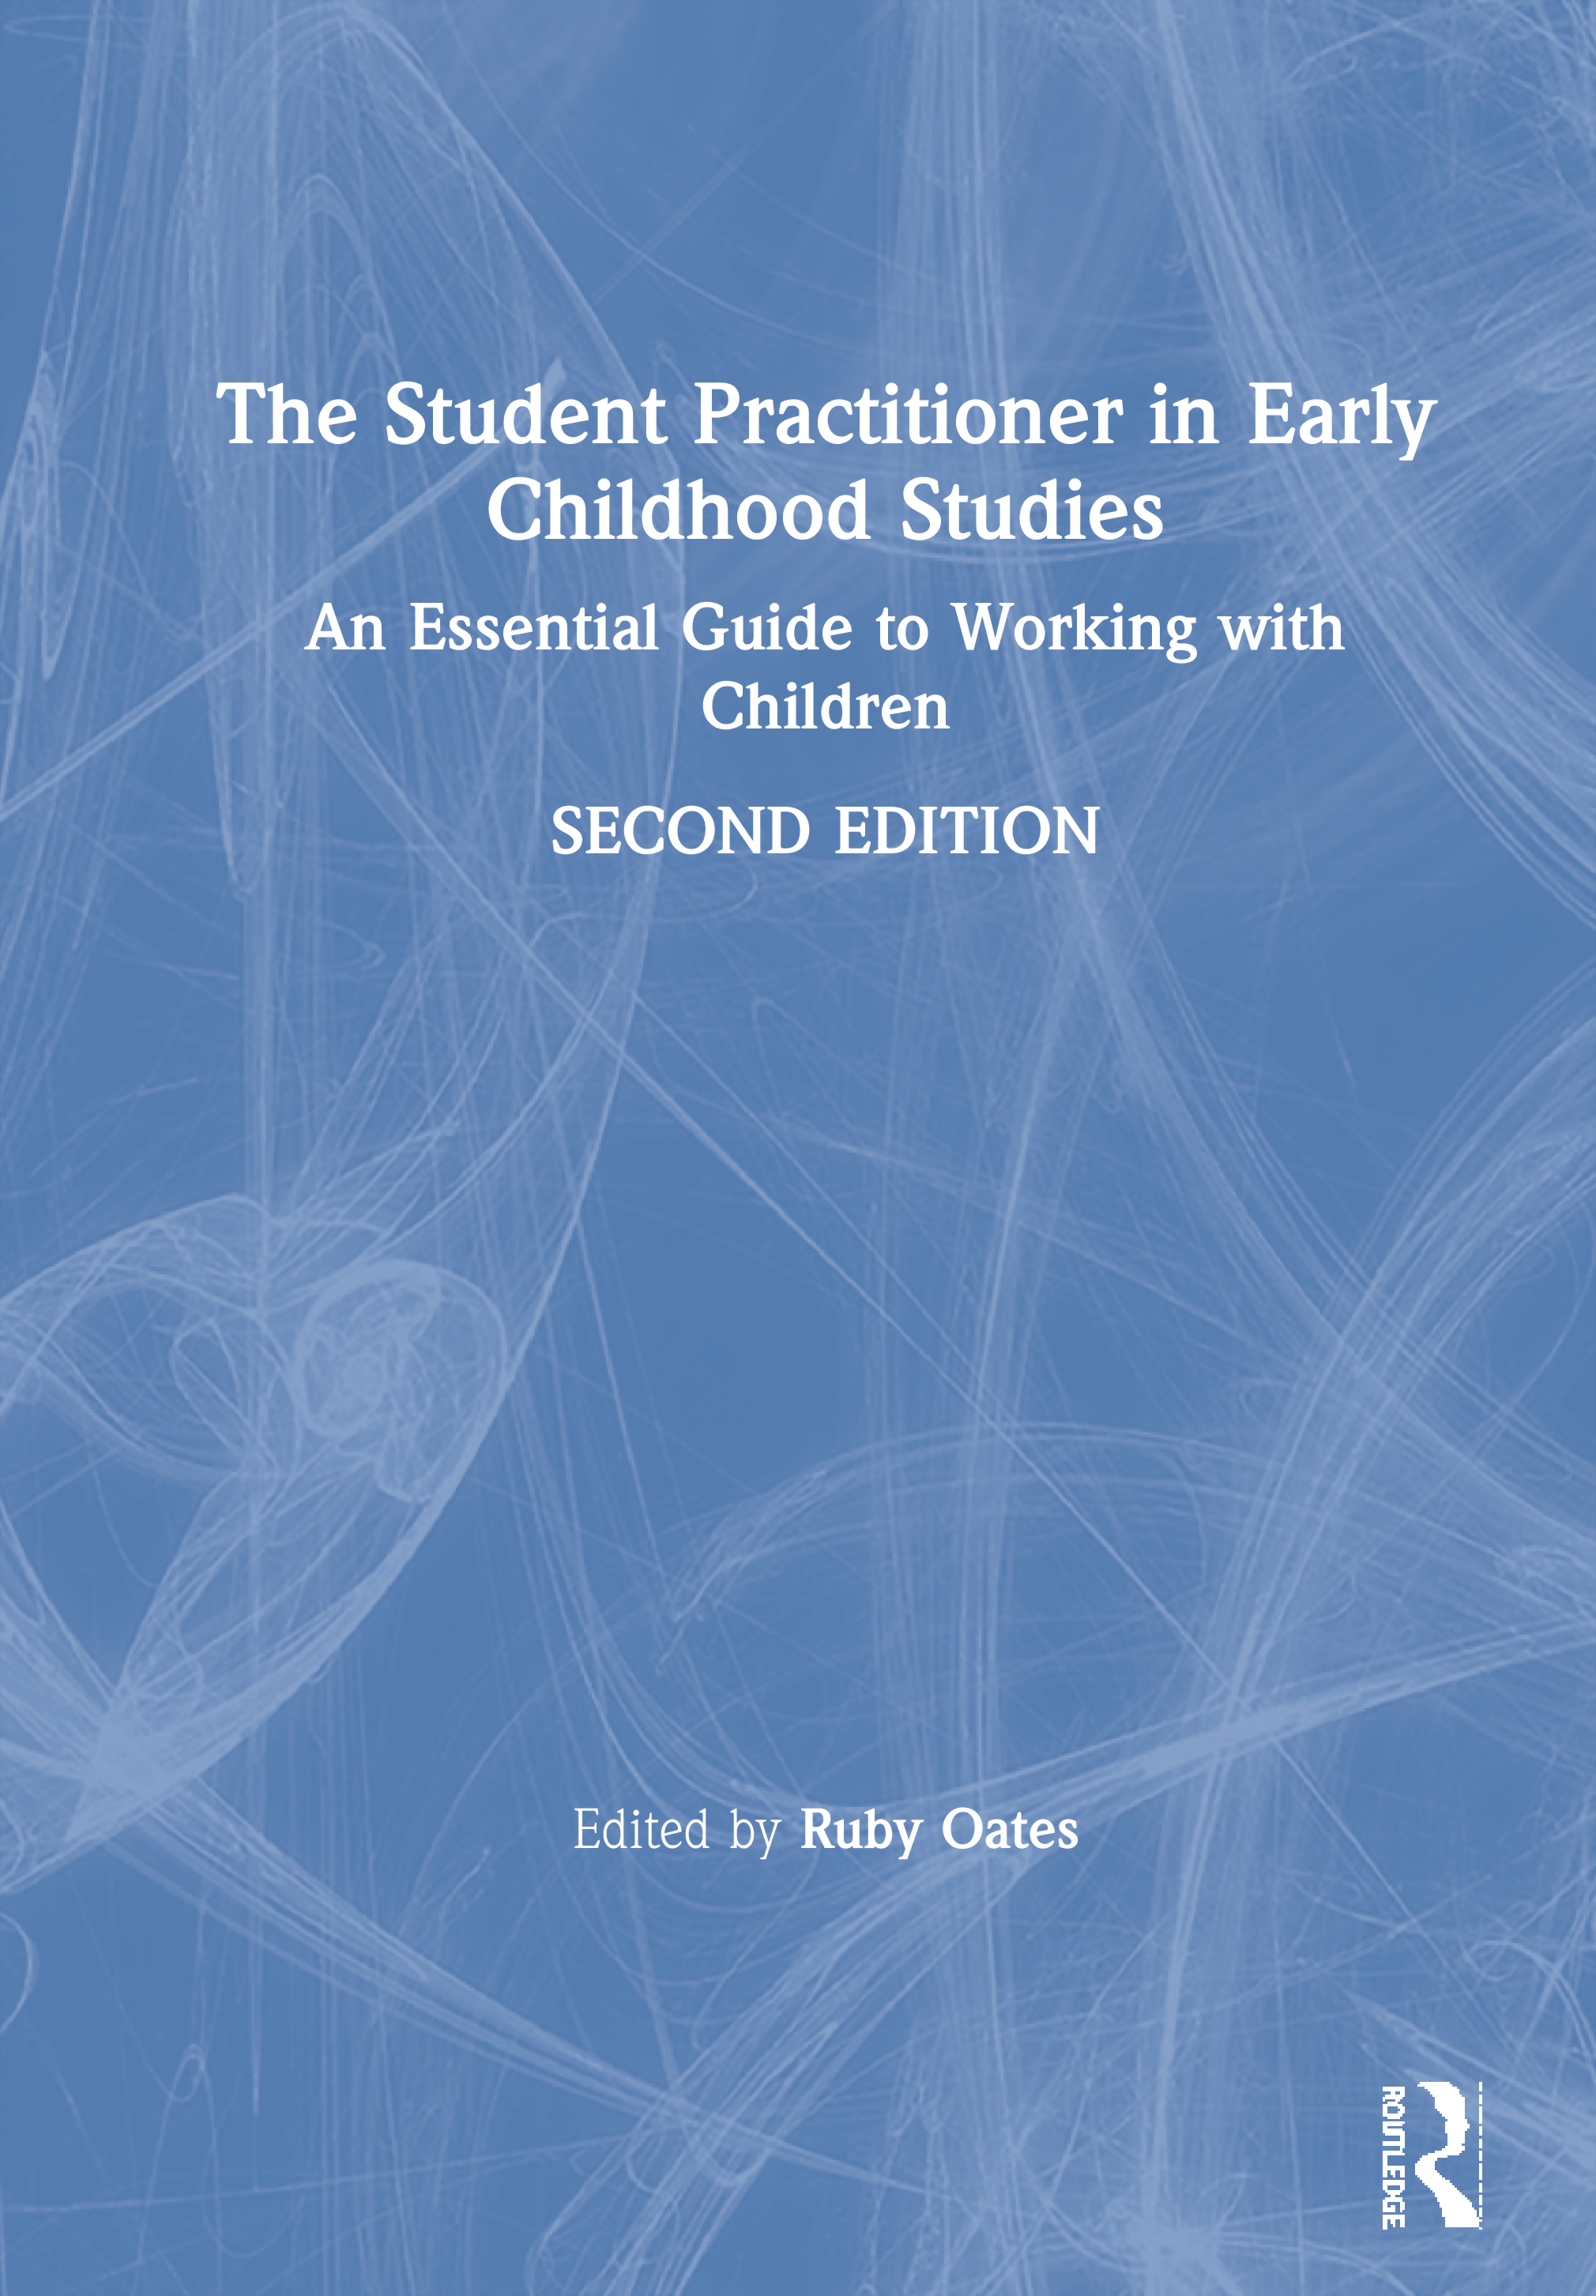 The Student Practitioner in Early Childhood Studies: An Essential Guide to Working with Children book cover